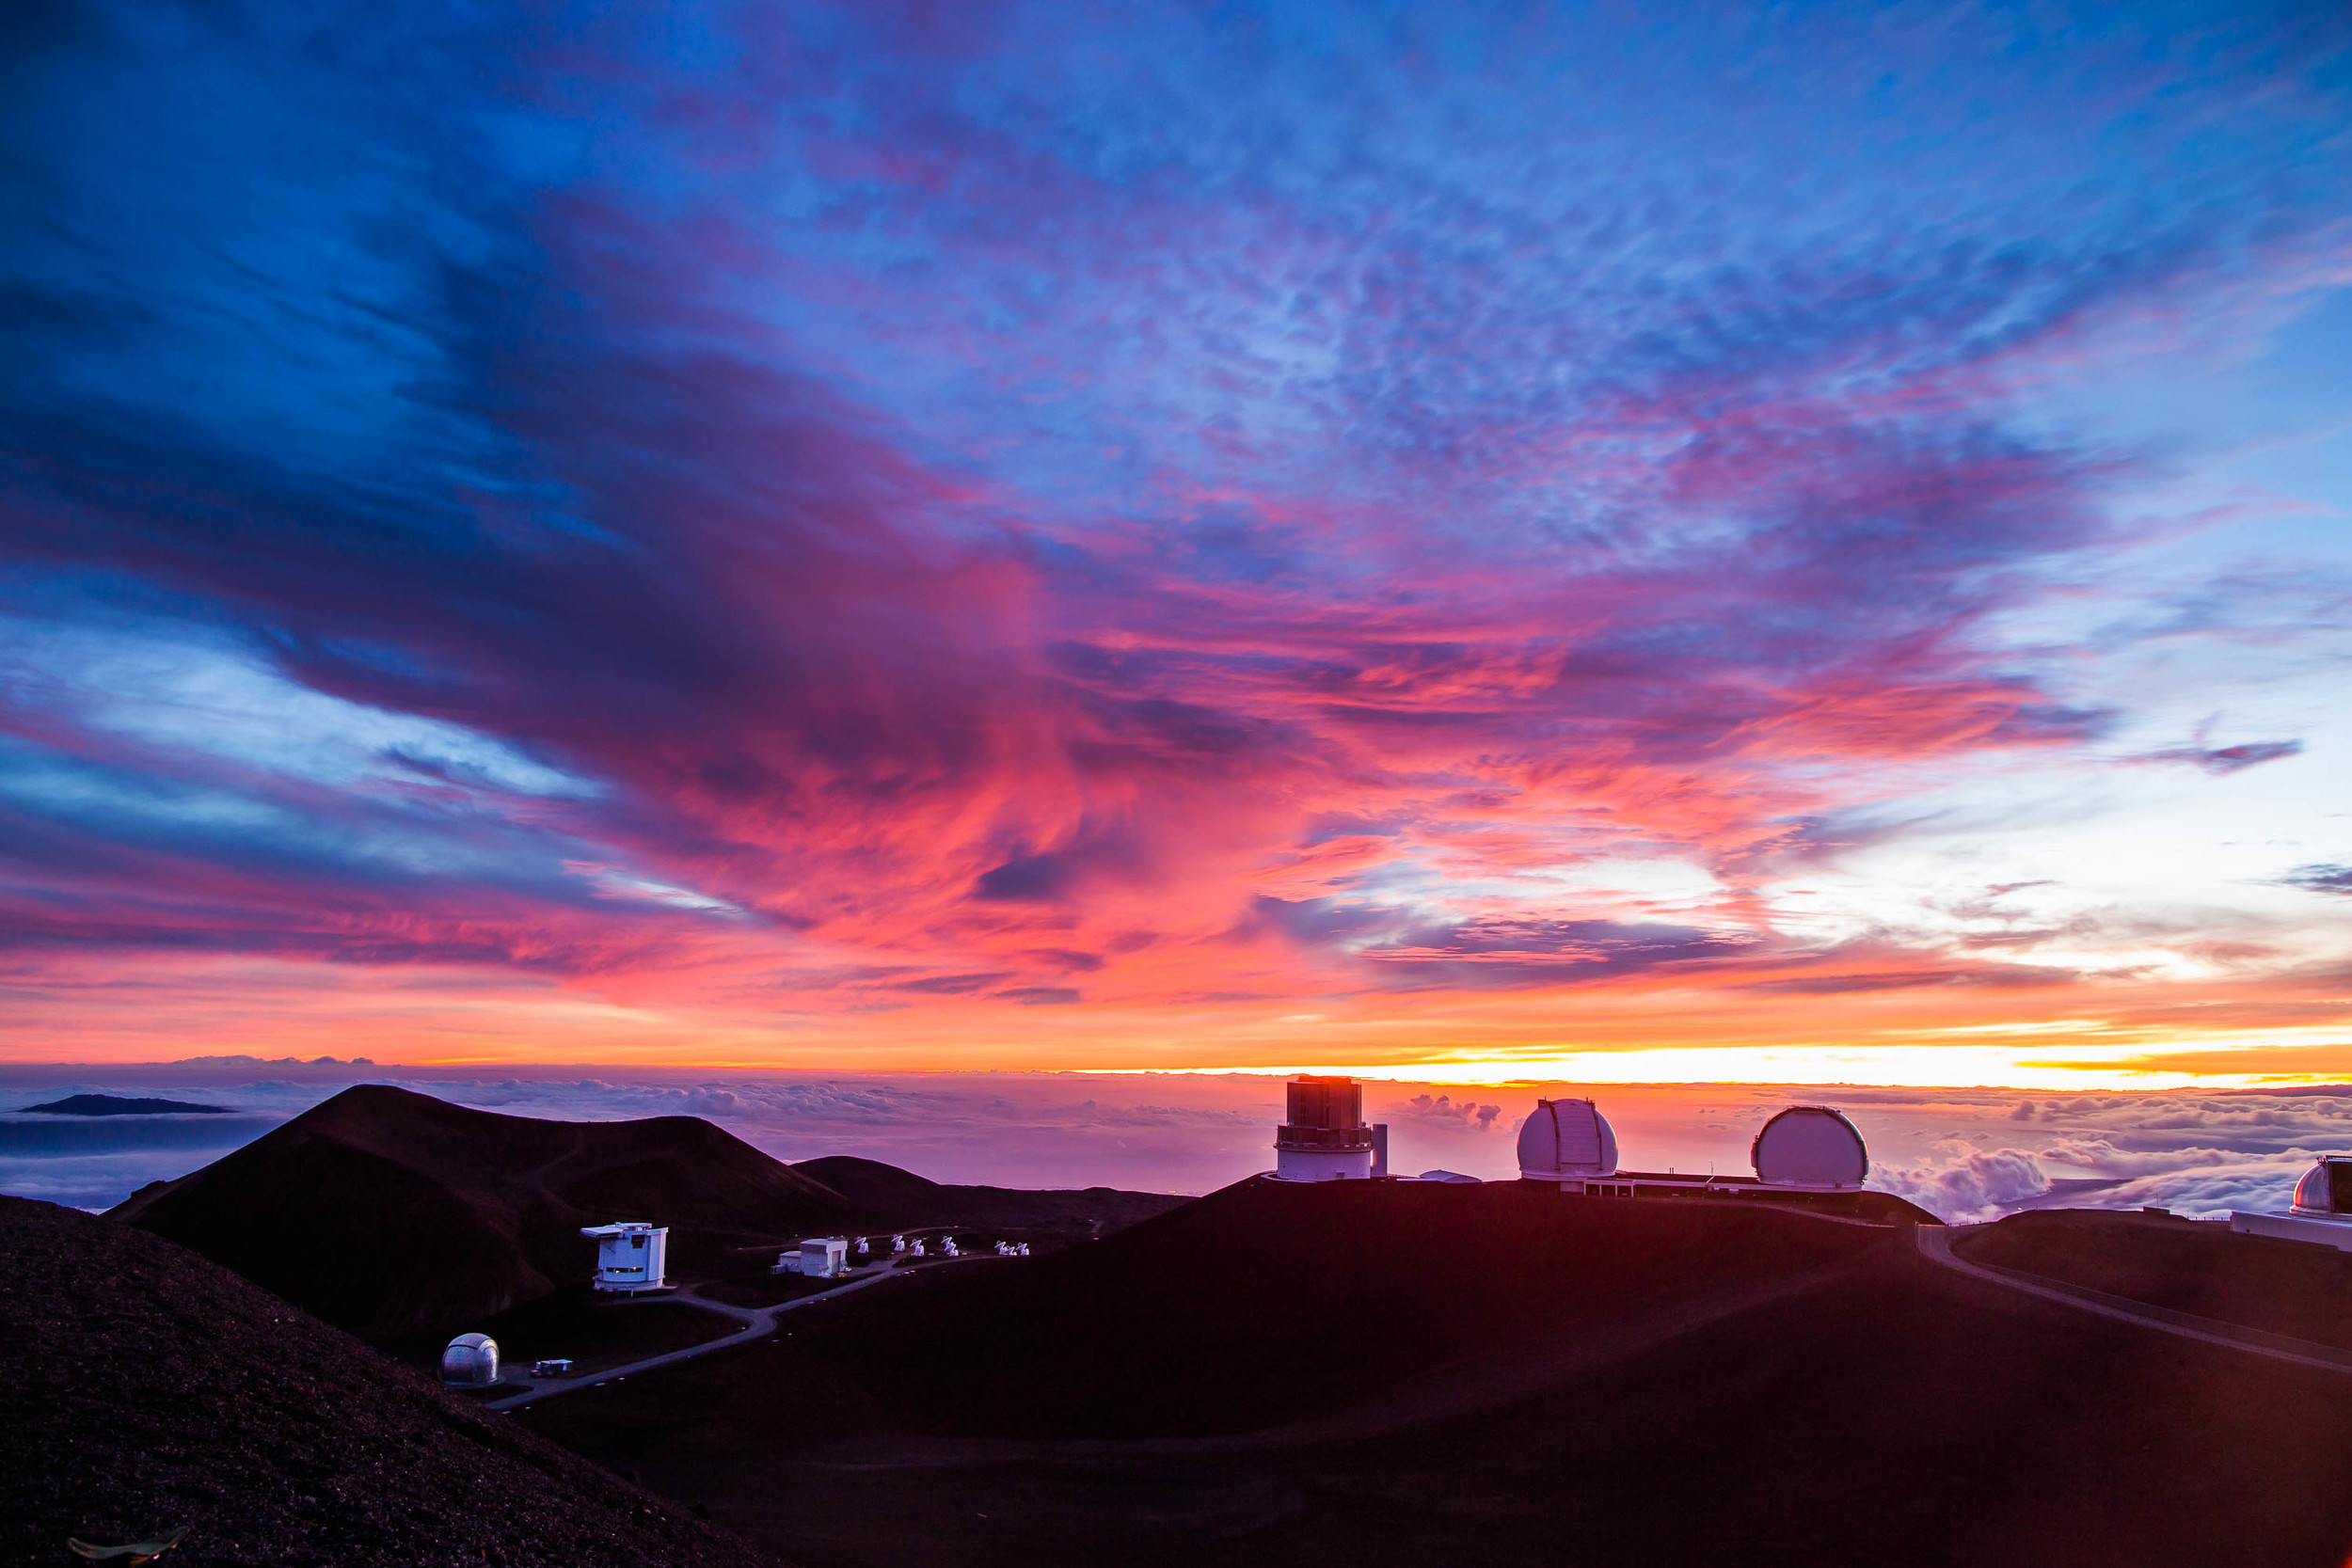 Lucky-We-Live-Hawaii-Mauna-kea-Big-Island